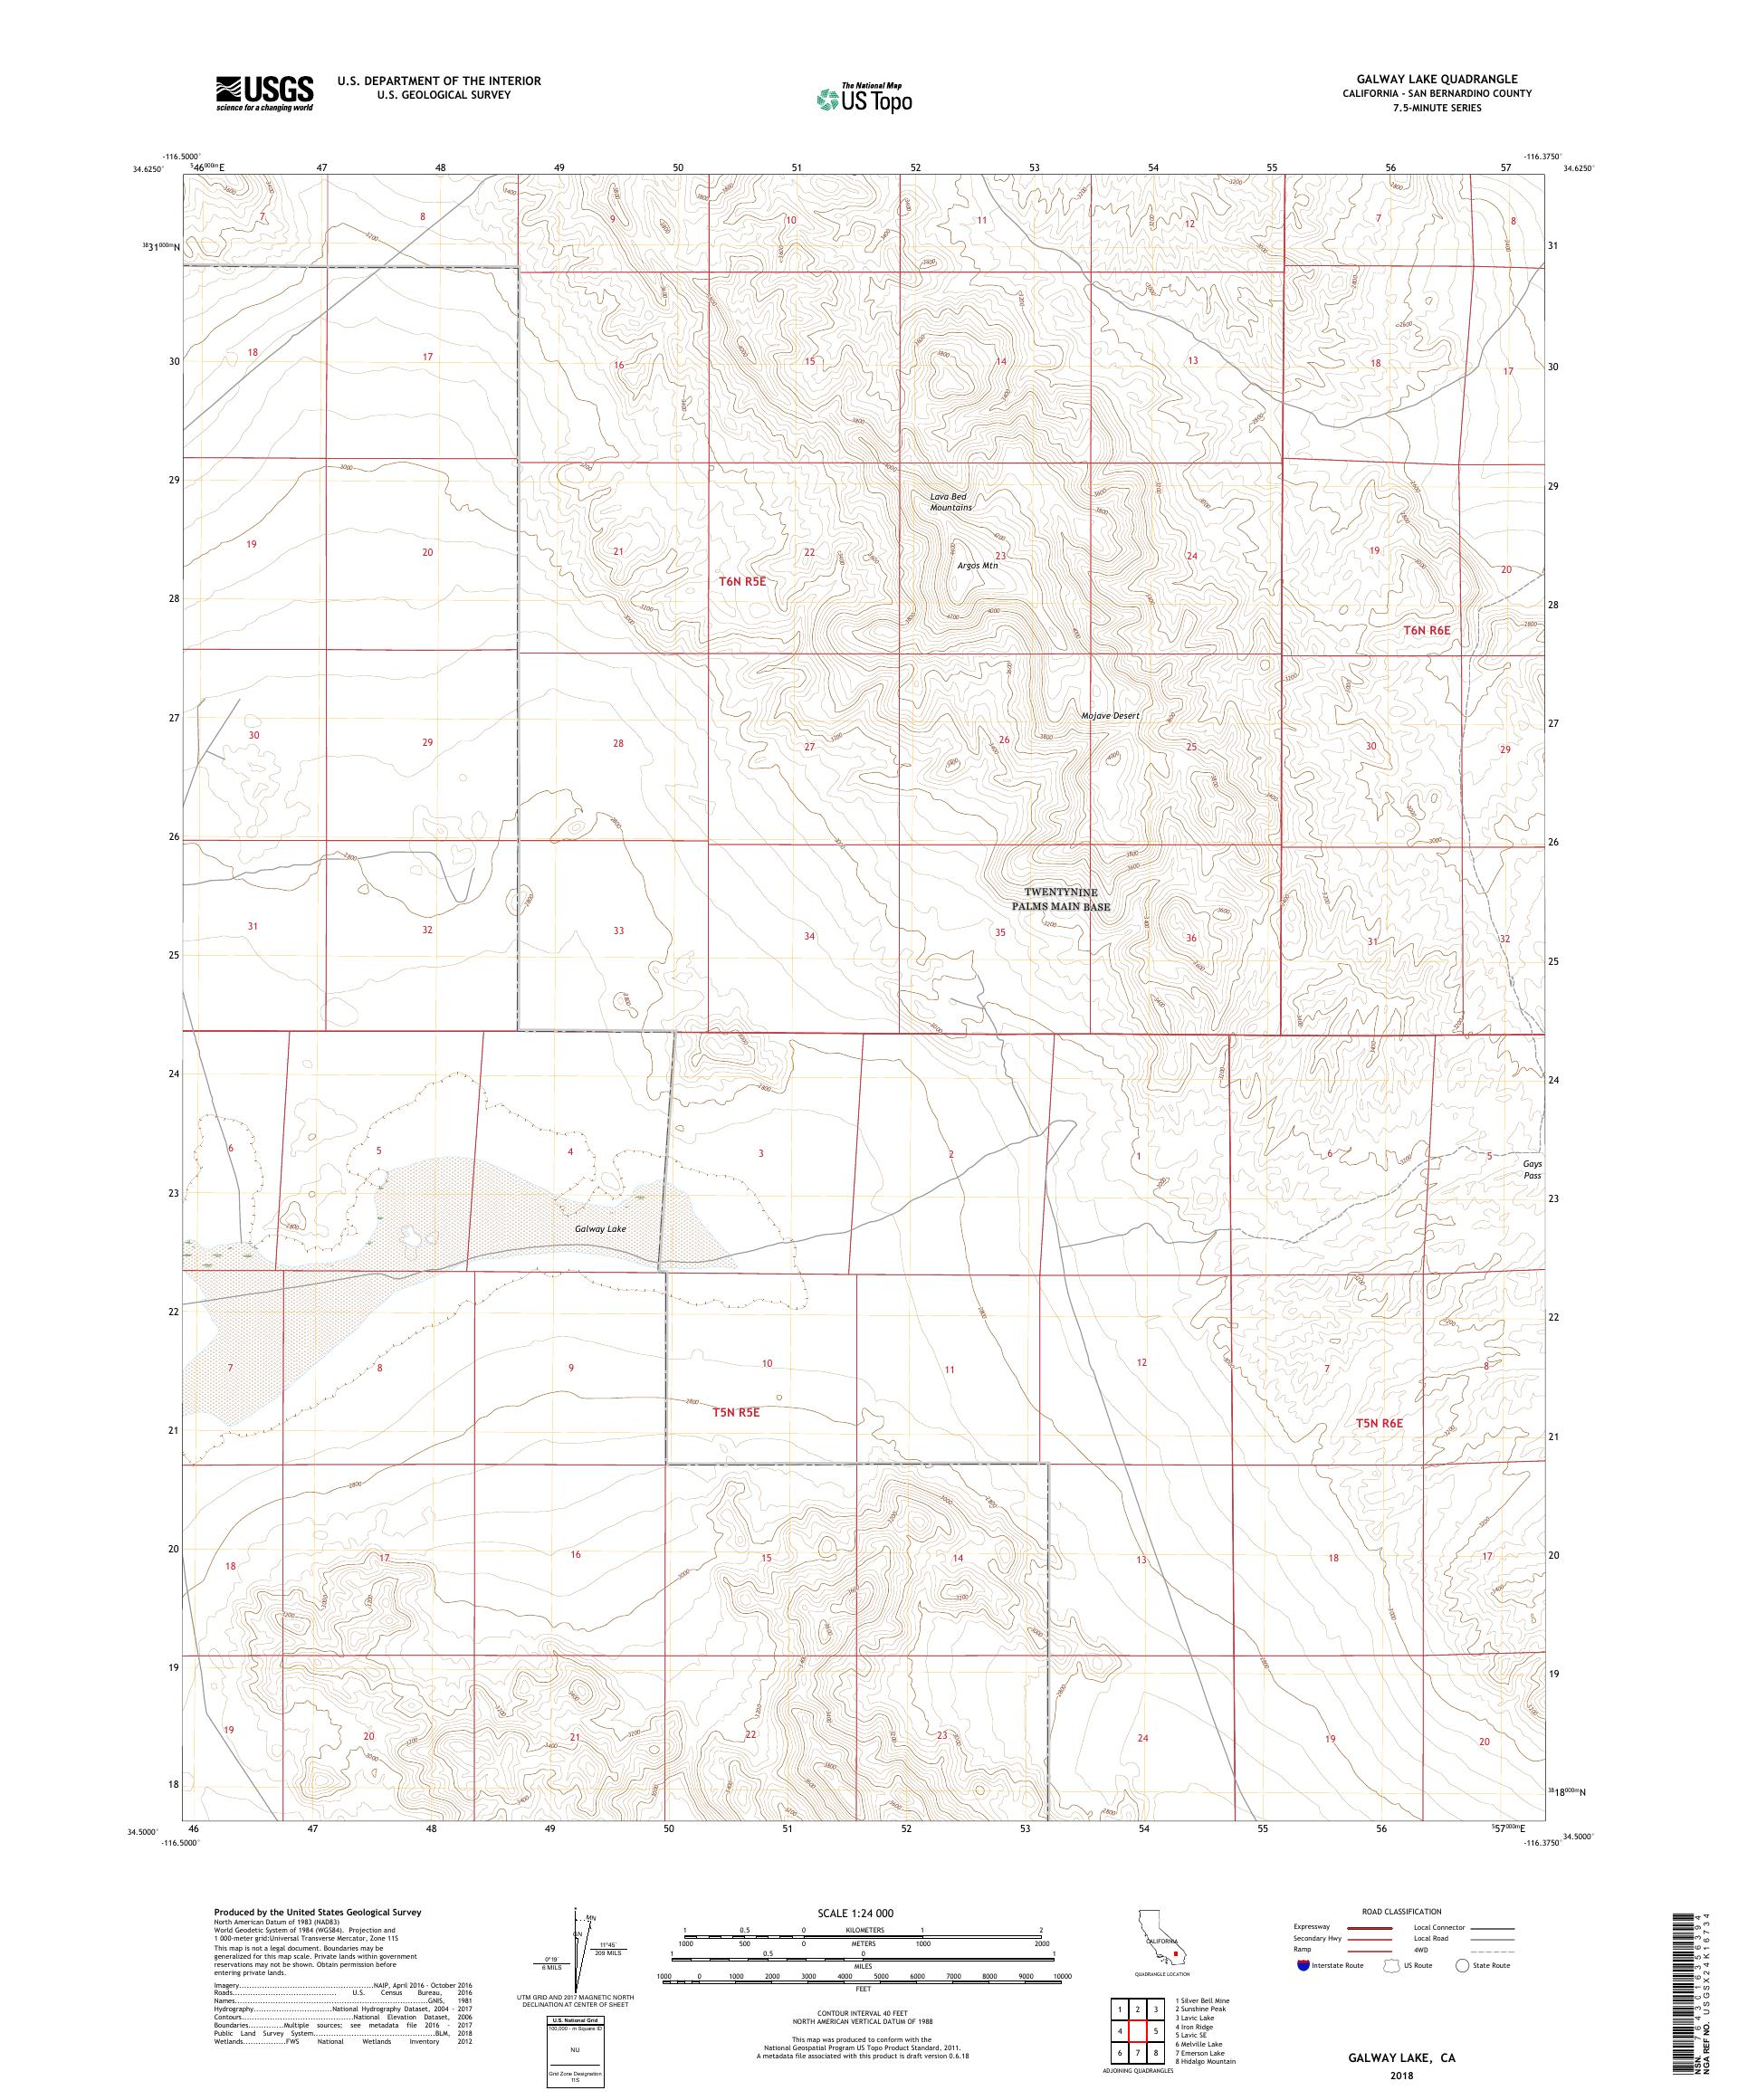 MyTopo Galway Lake, California USGS Quad Topo Map